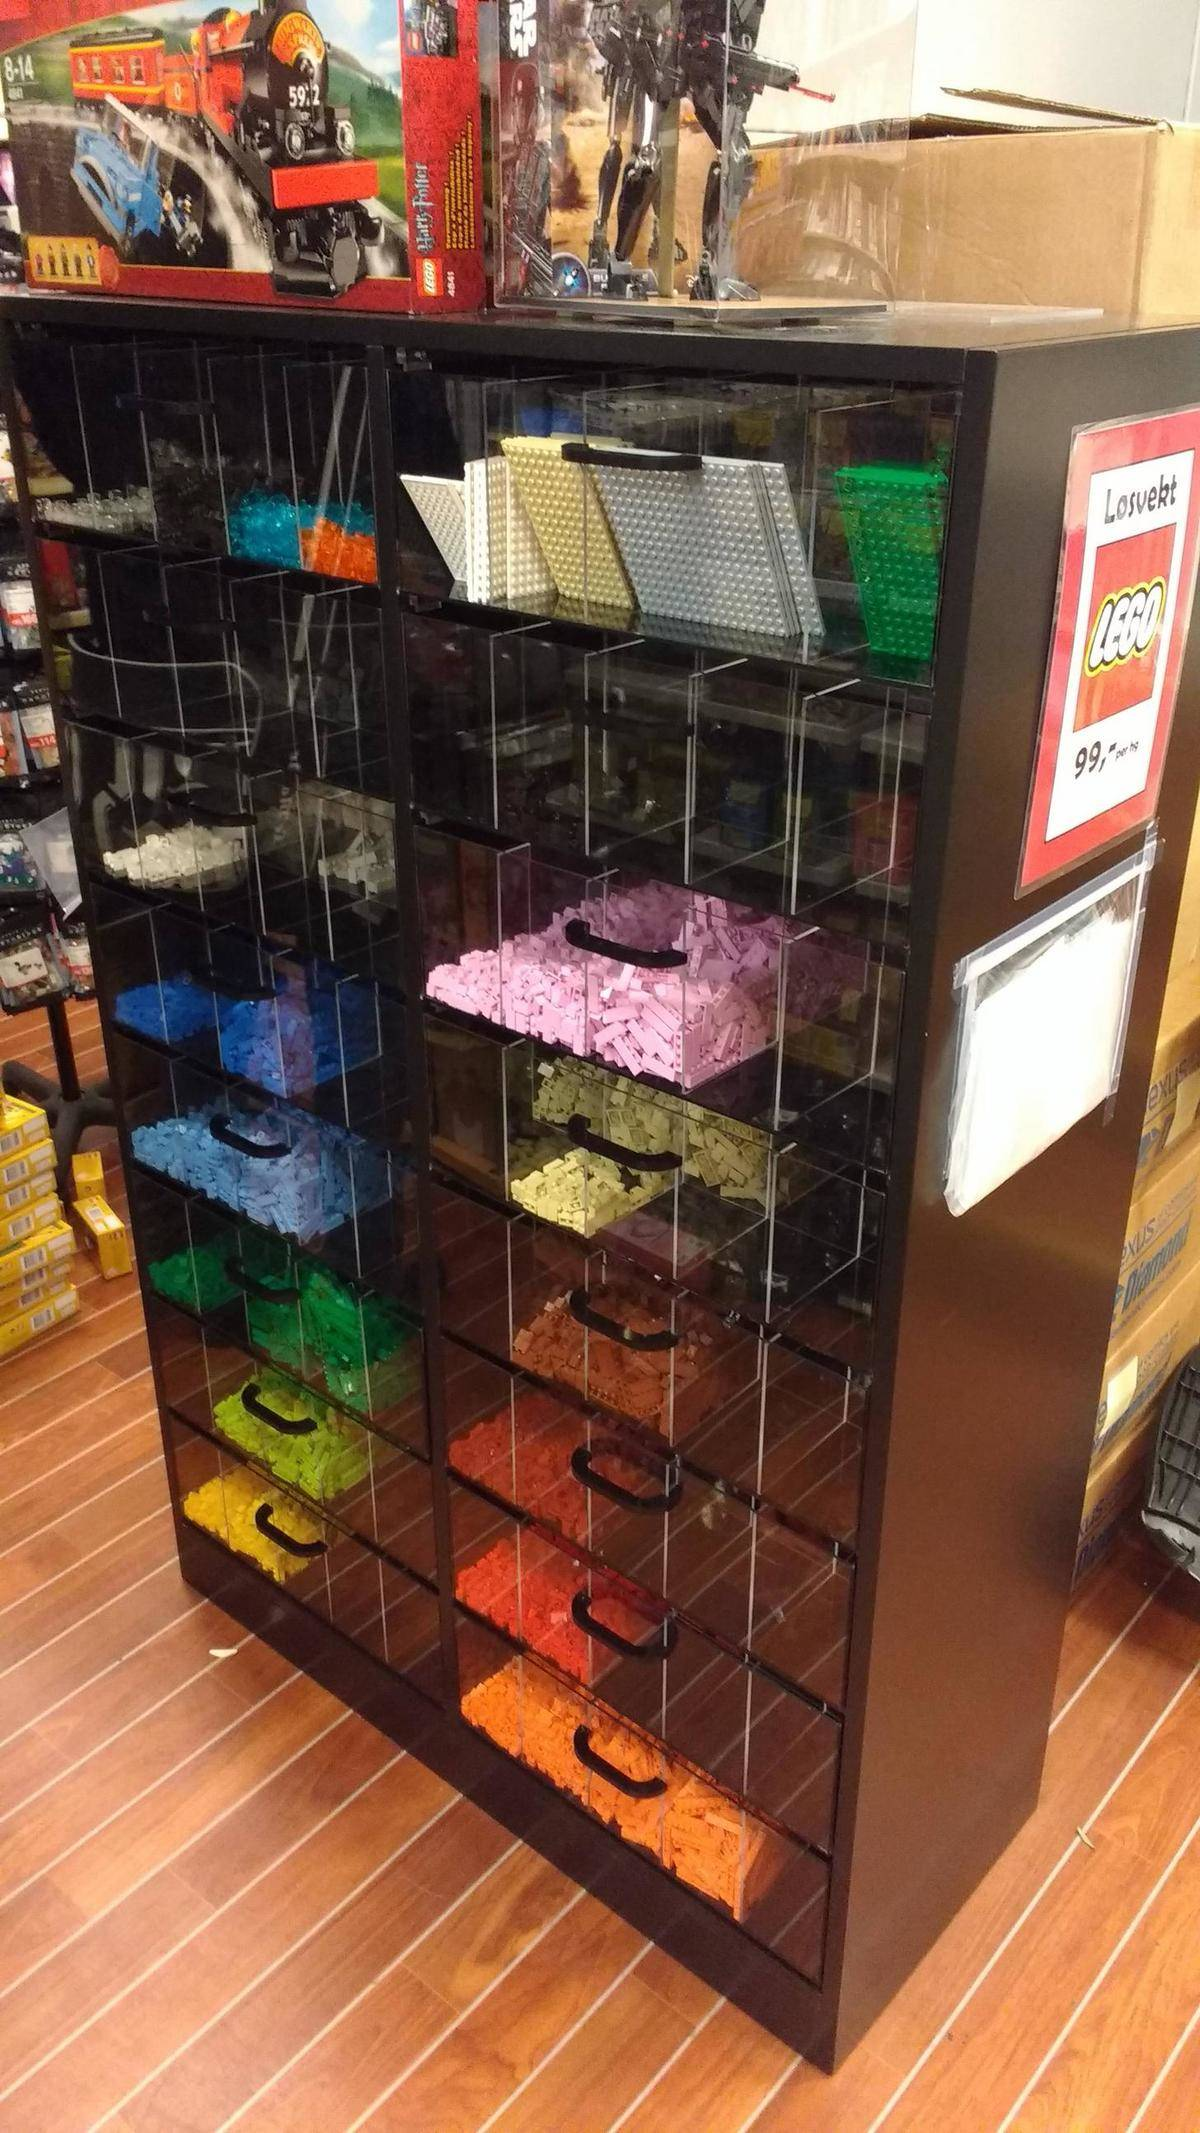 lego split up by color to be collected like bulk store bin